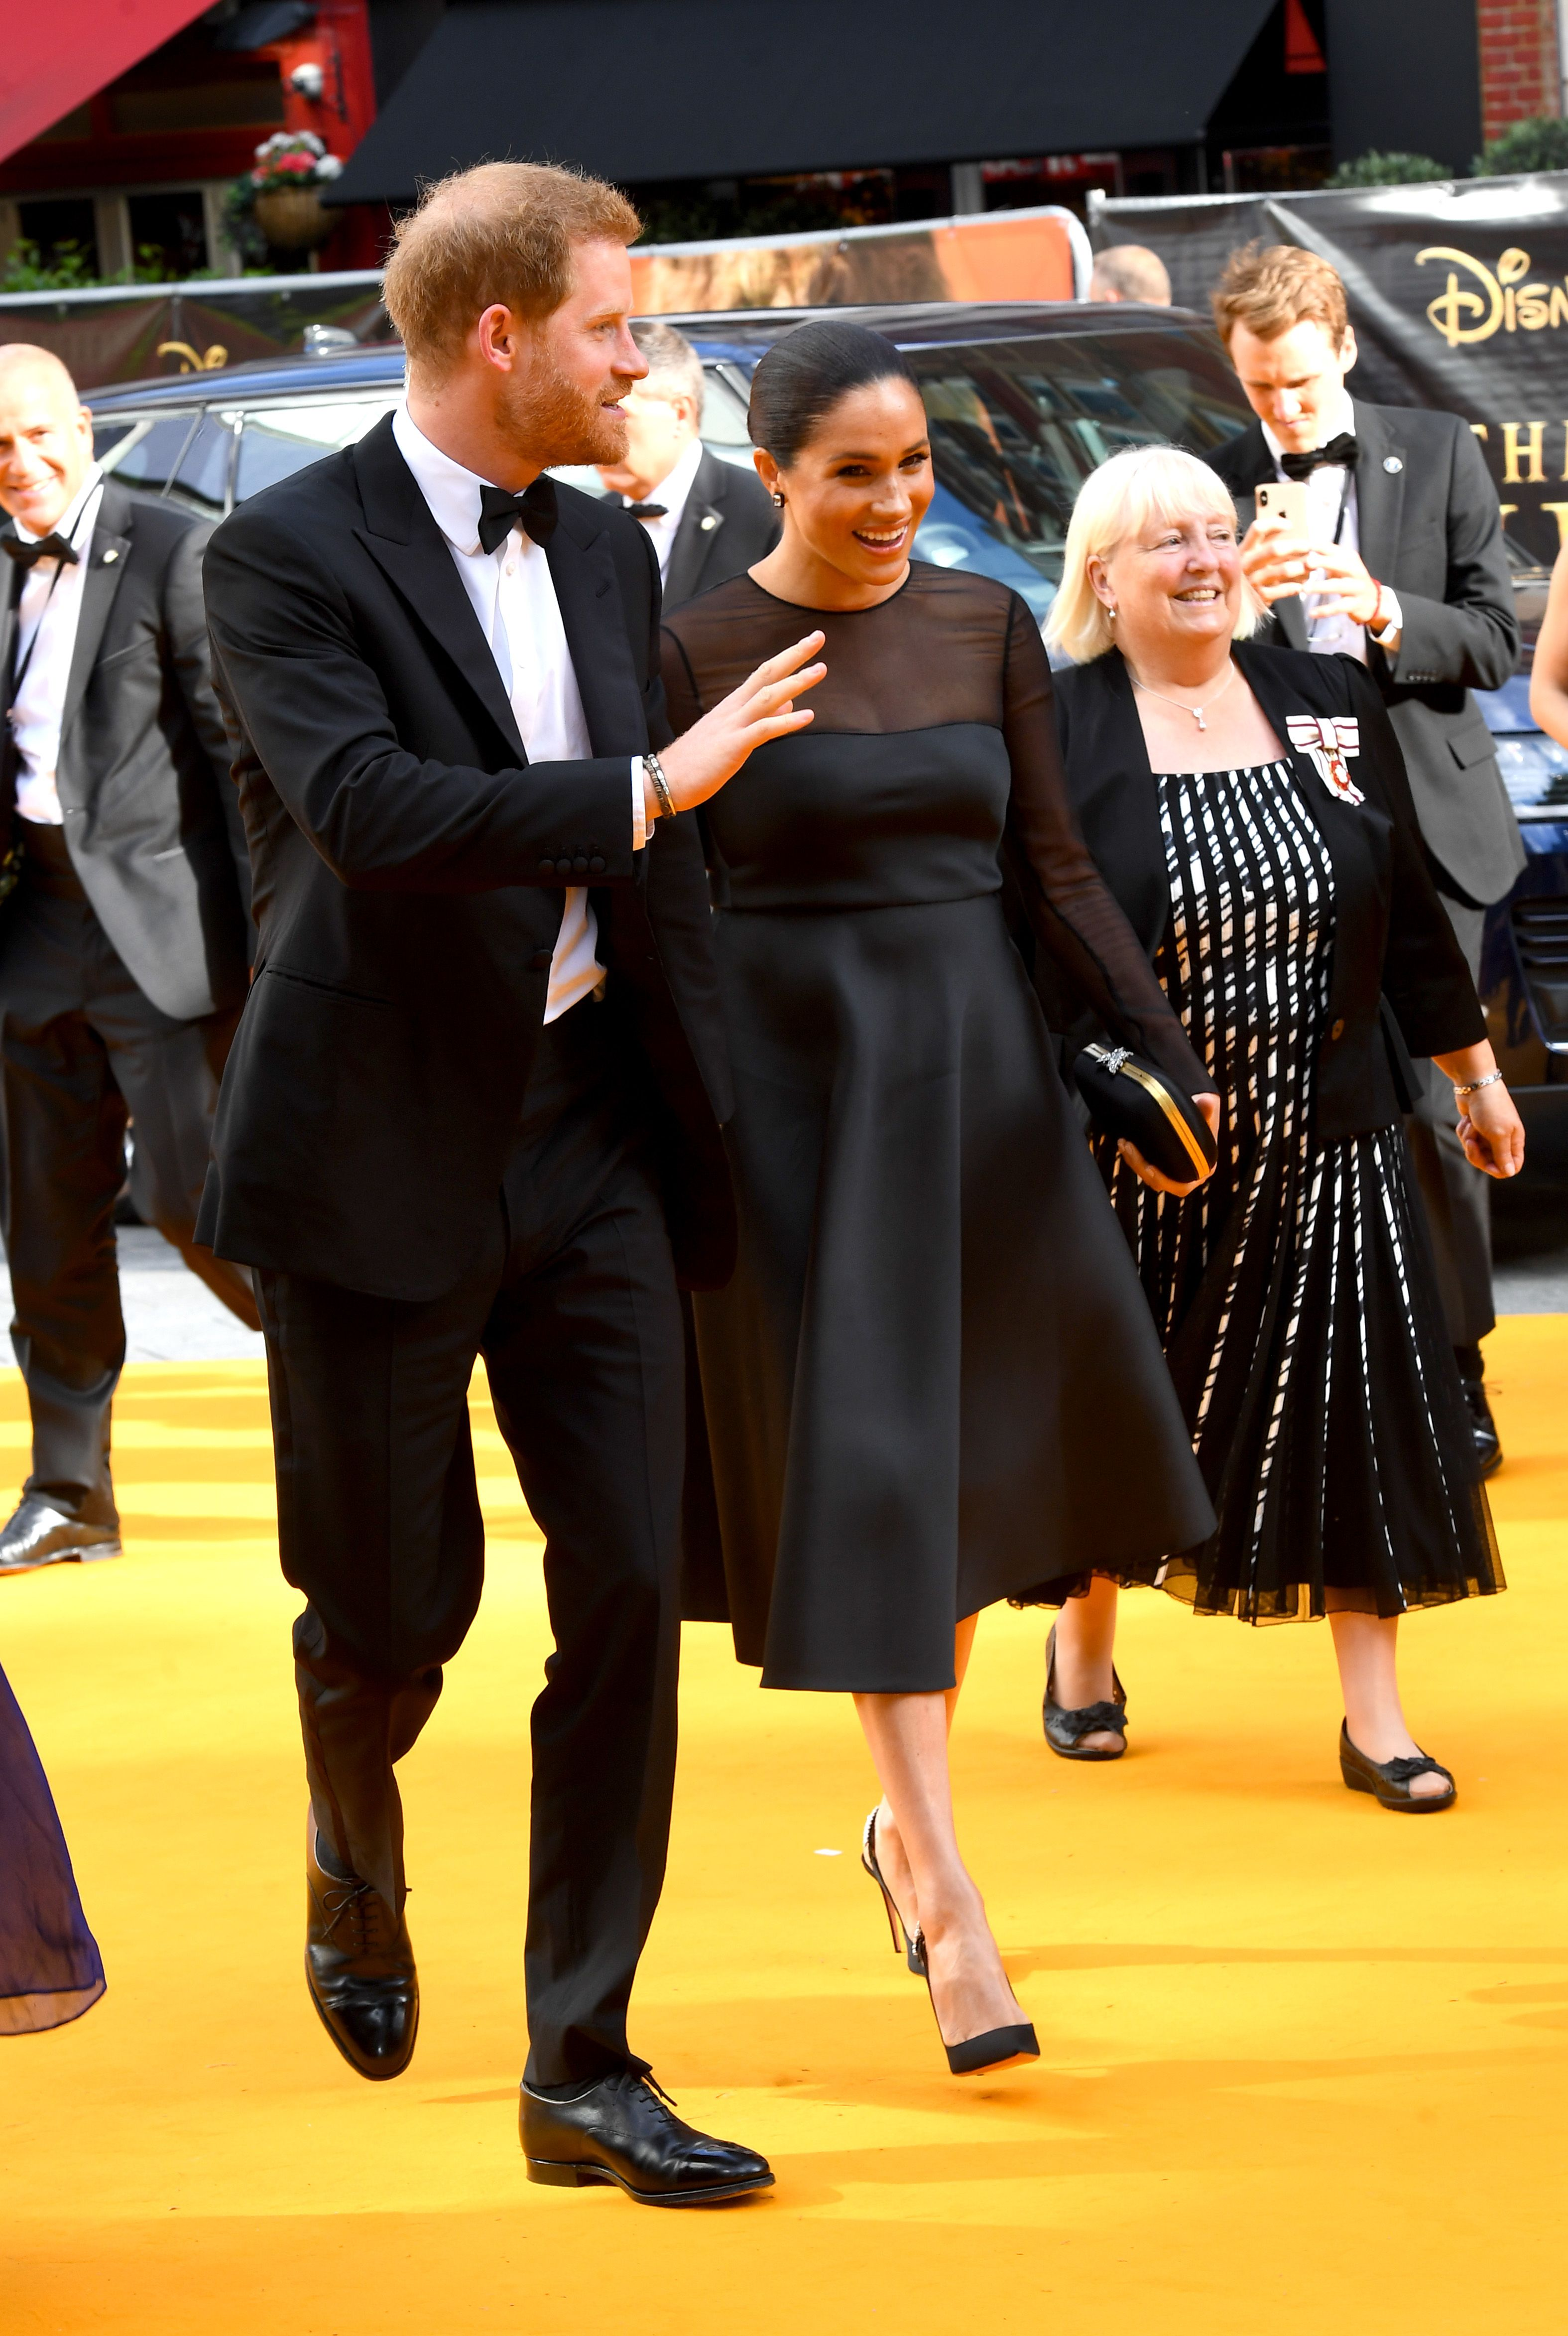 Meghan Markle and Prince Harry Matched in Chic Black Ensembles at the Lion King Premiere